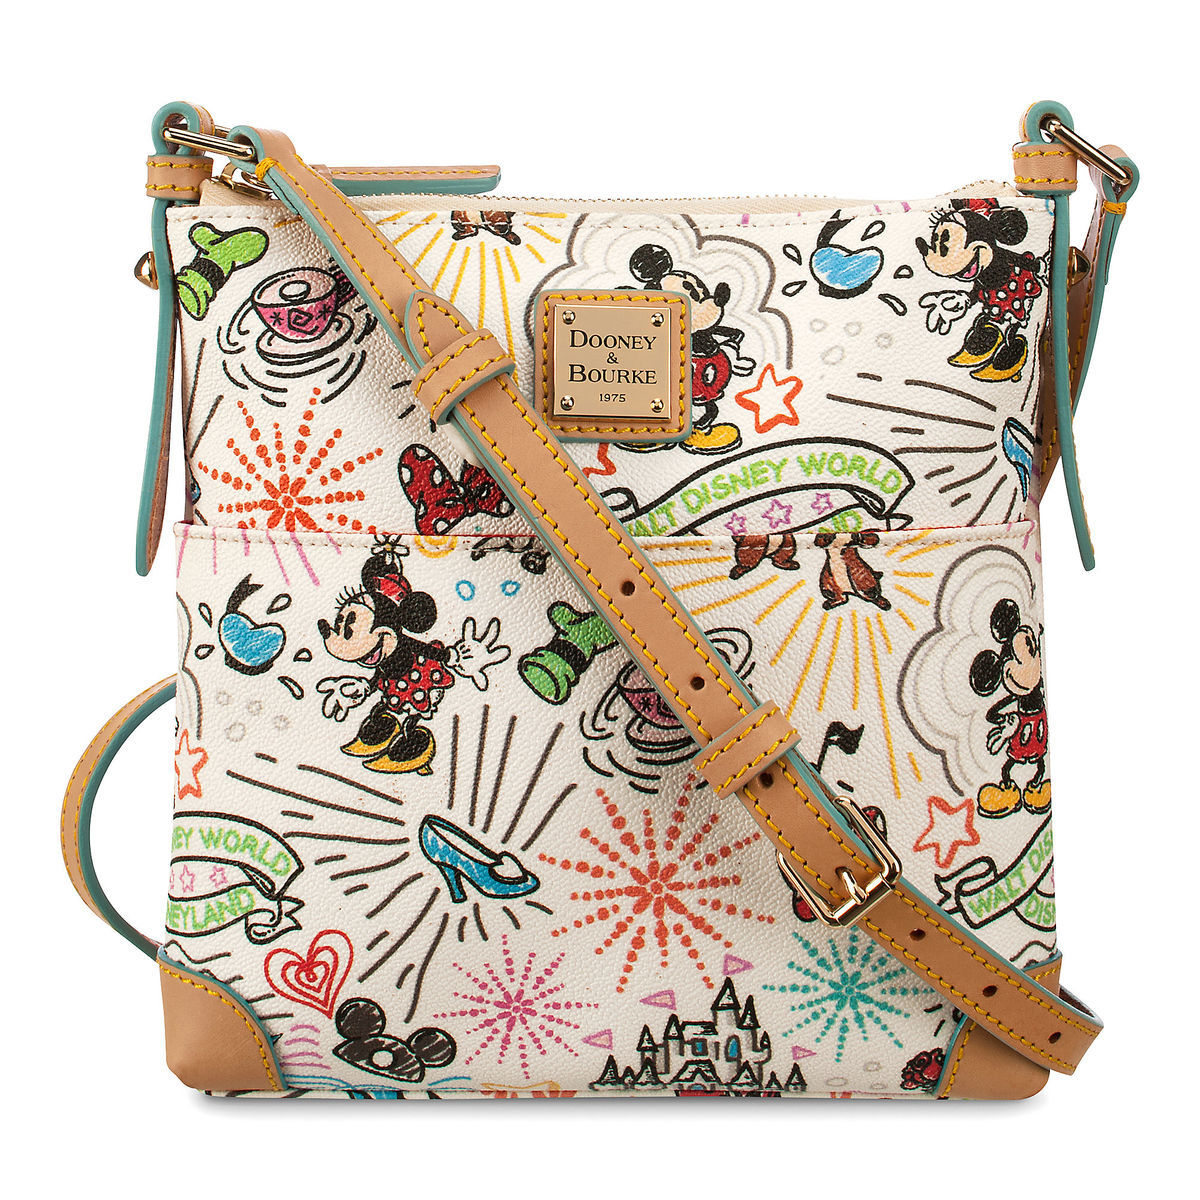 Disney Sketch Crossbody Bag By Dooney Bourke Shopdisney